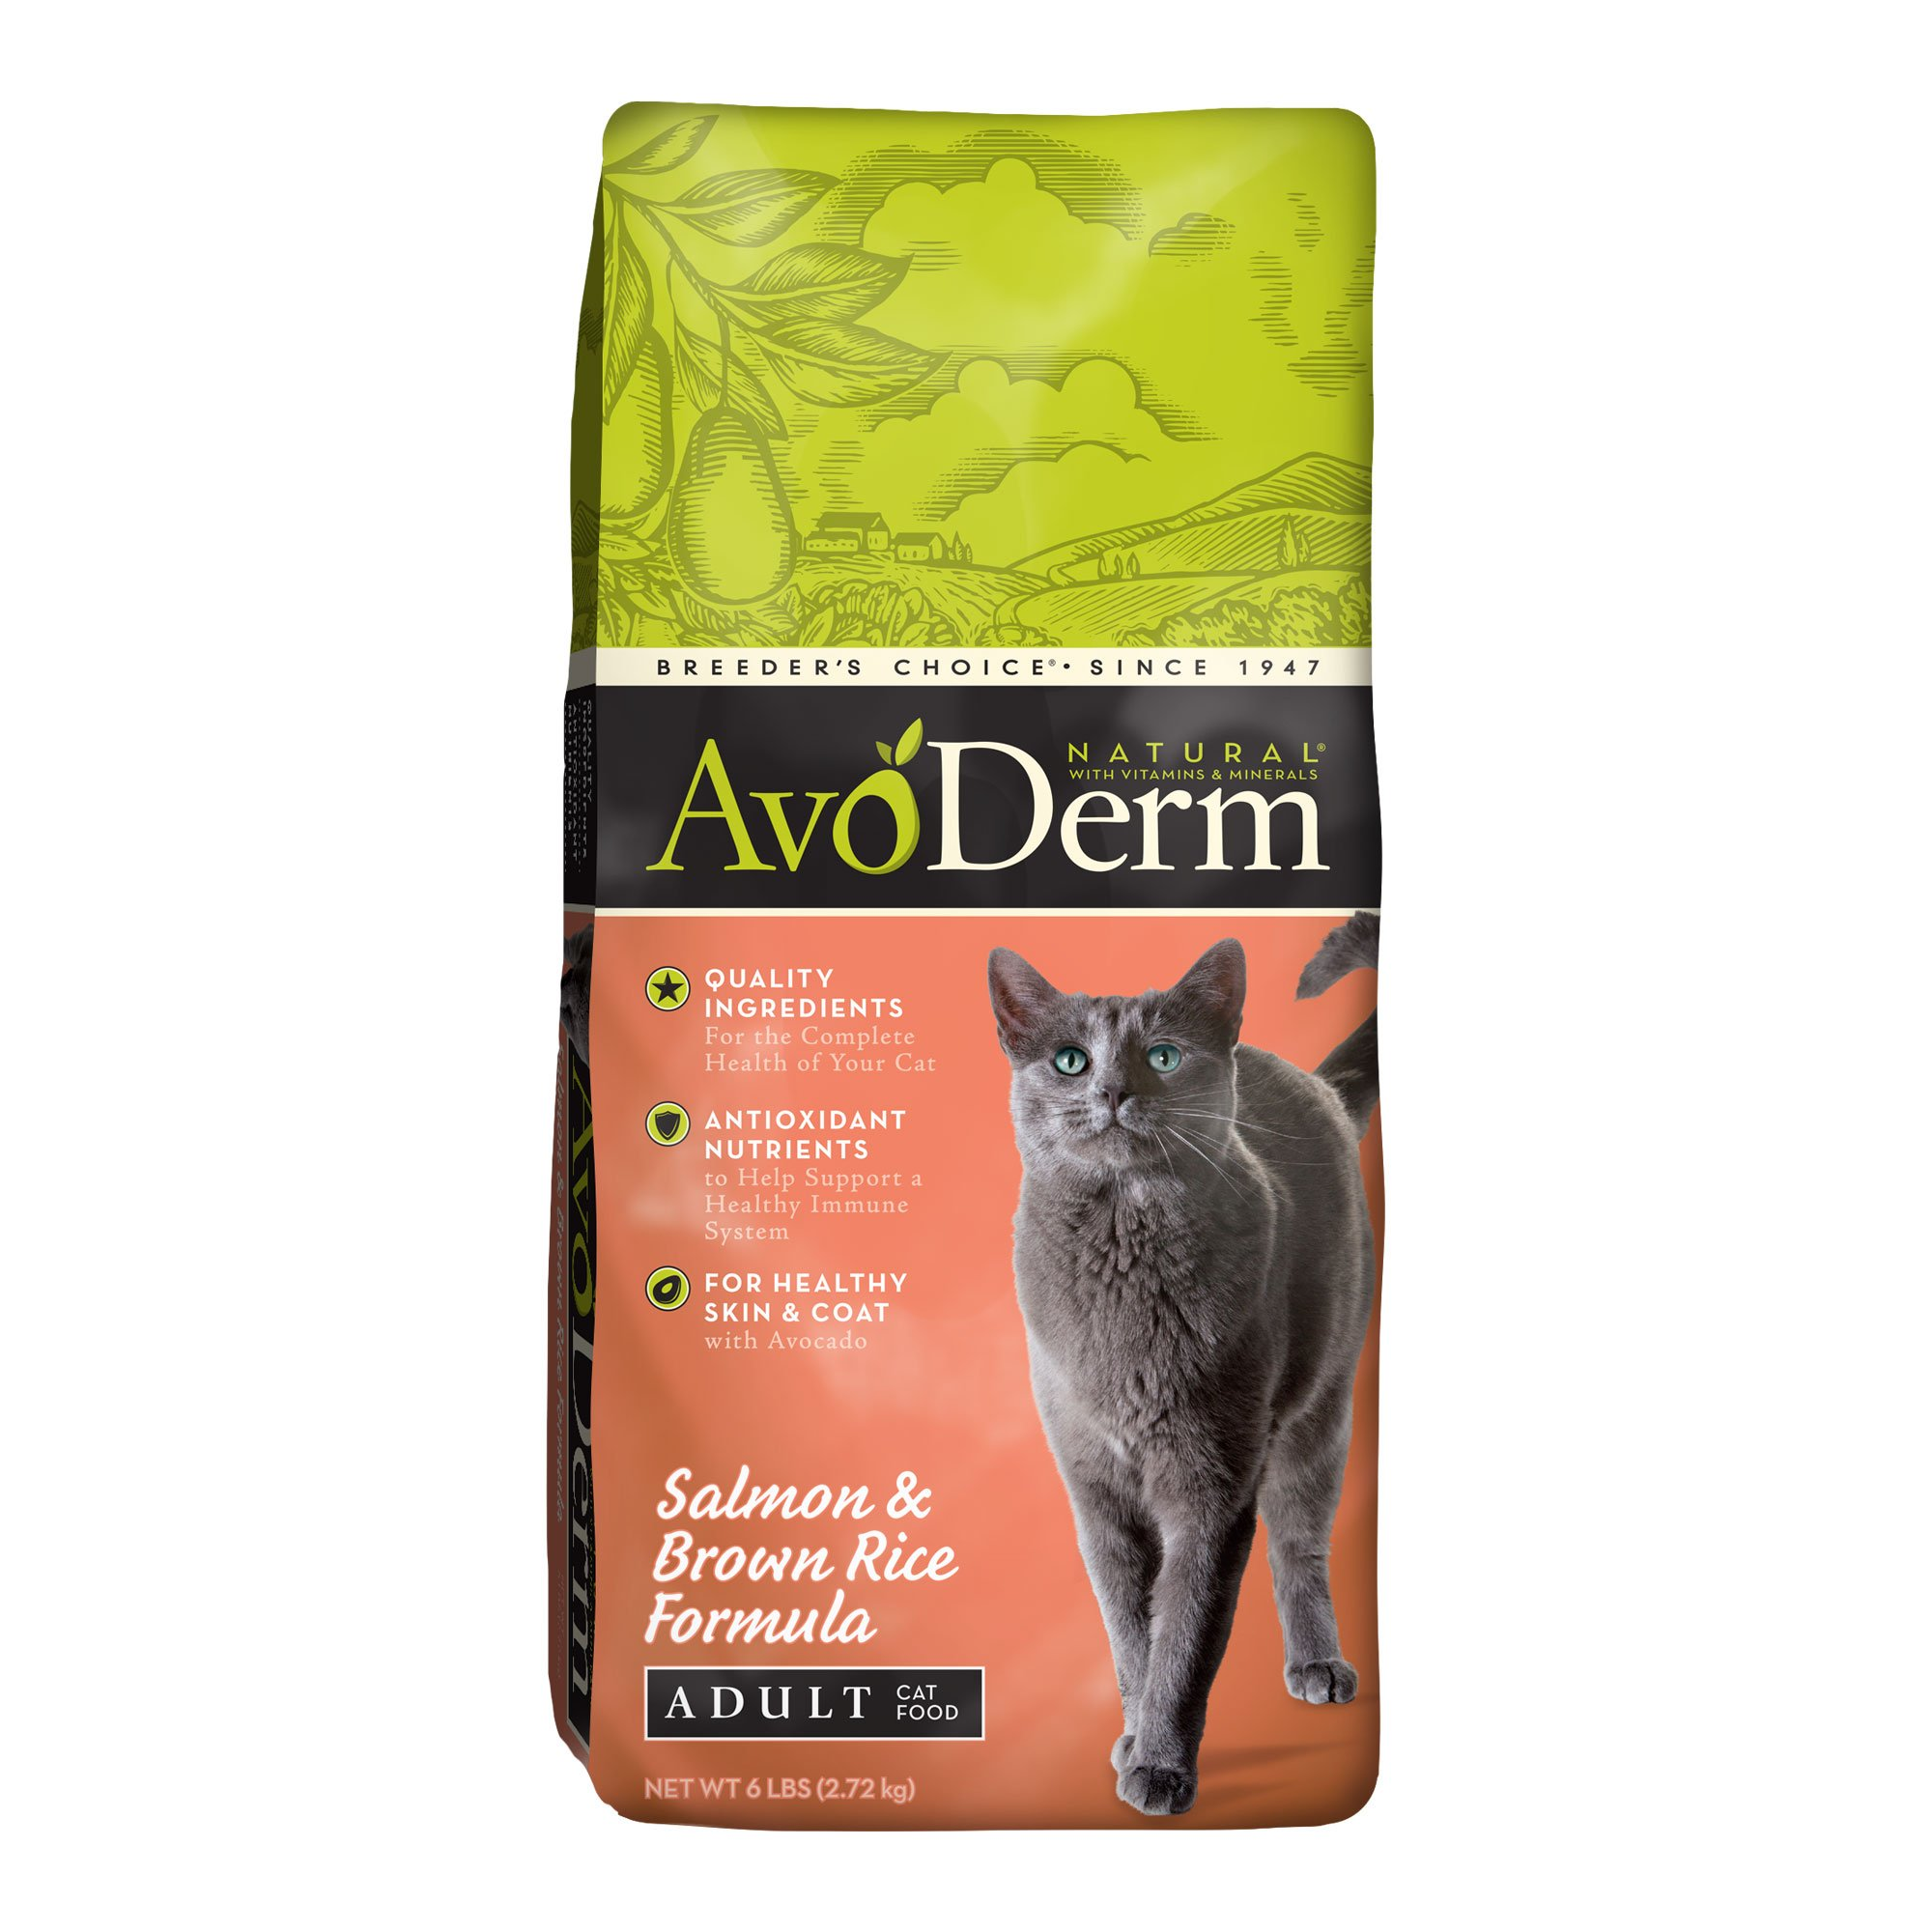 Avoderm Natural Salmon Brown Rice Adult Cat Food